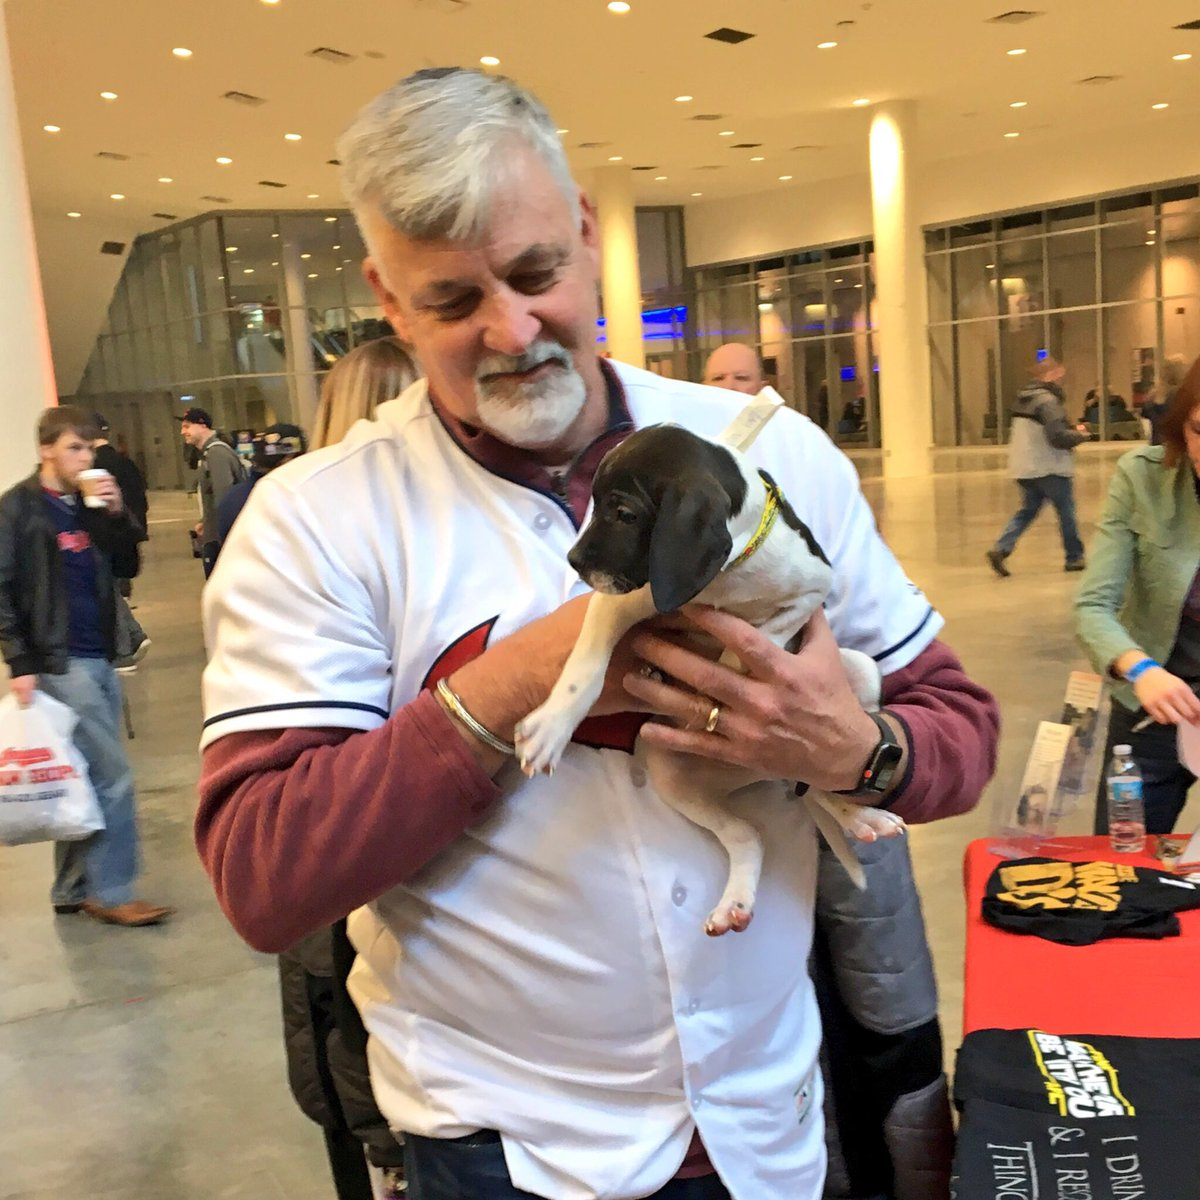 Indians pitching coach Carl Willis loves the puppies. #TribeFest https://t.co/t6bNsspJVI